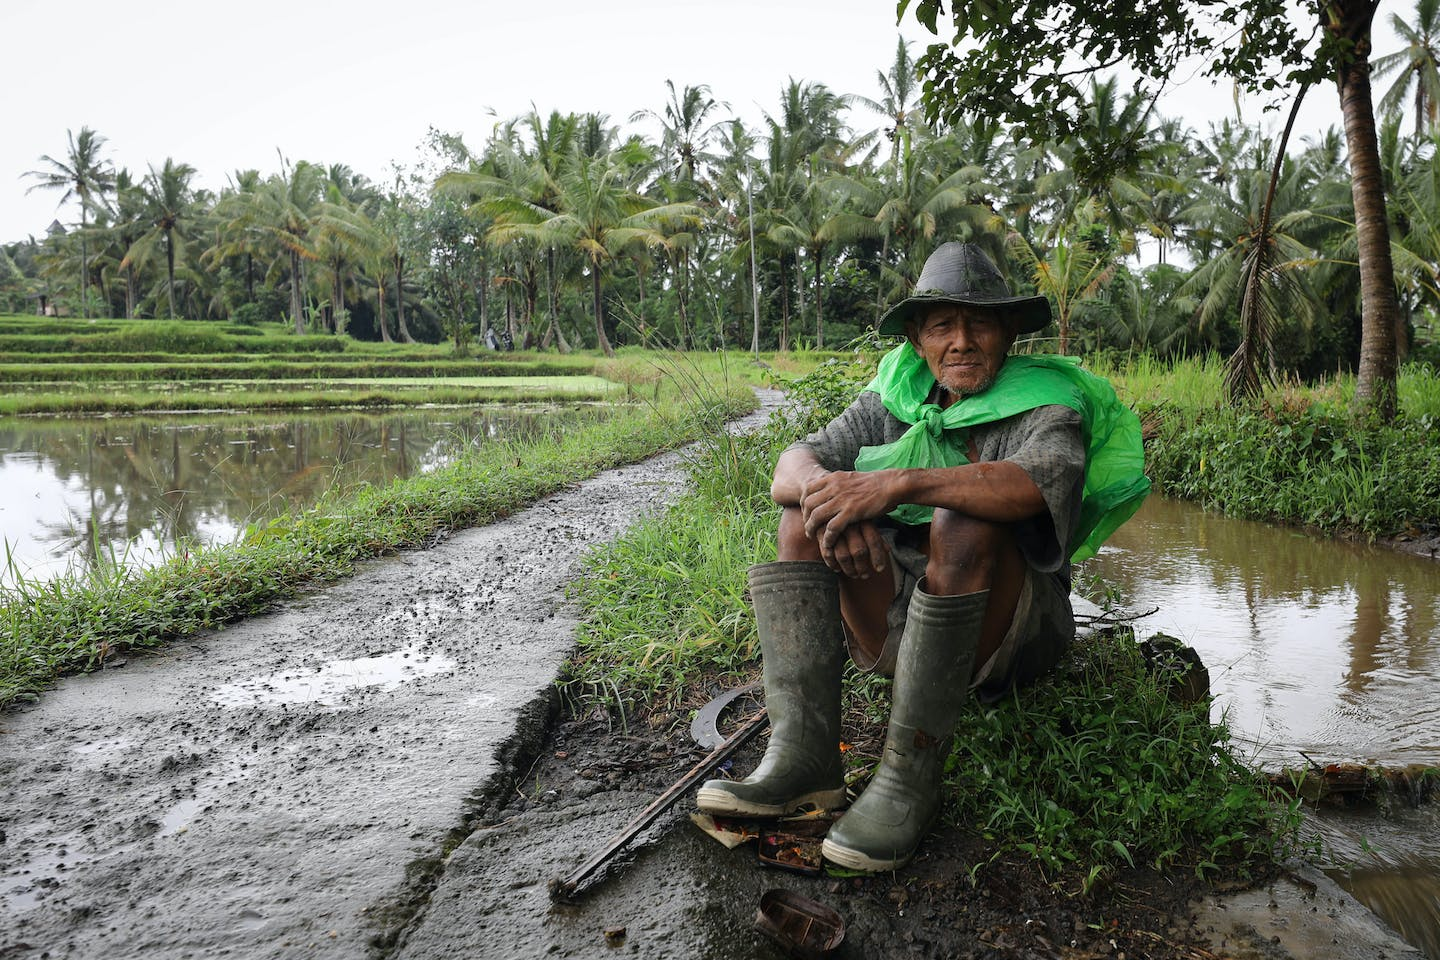 A farmer in Ubud, Bali, Indonesia sits beside his crops